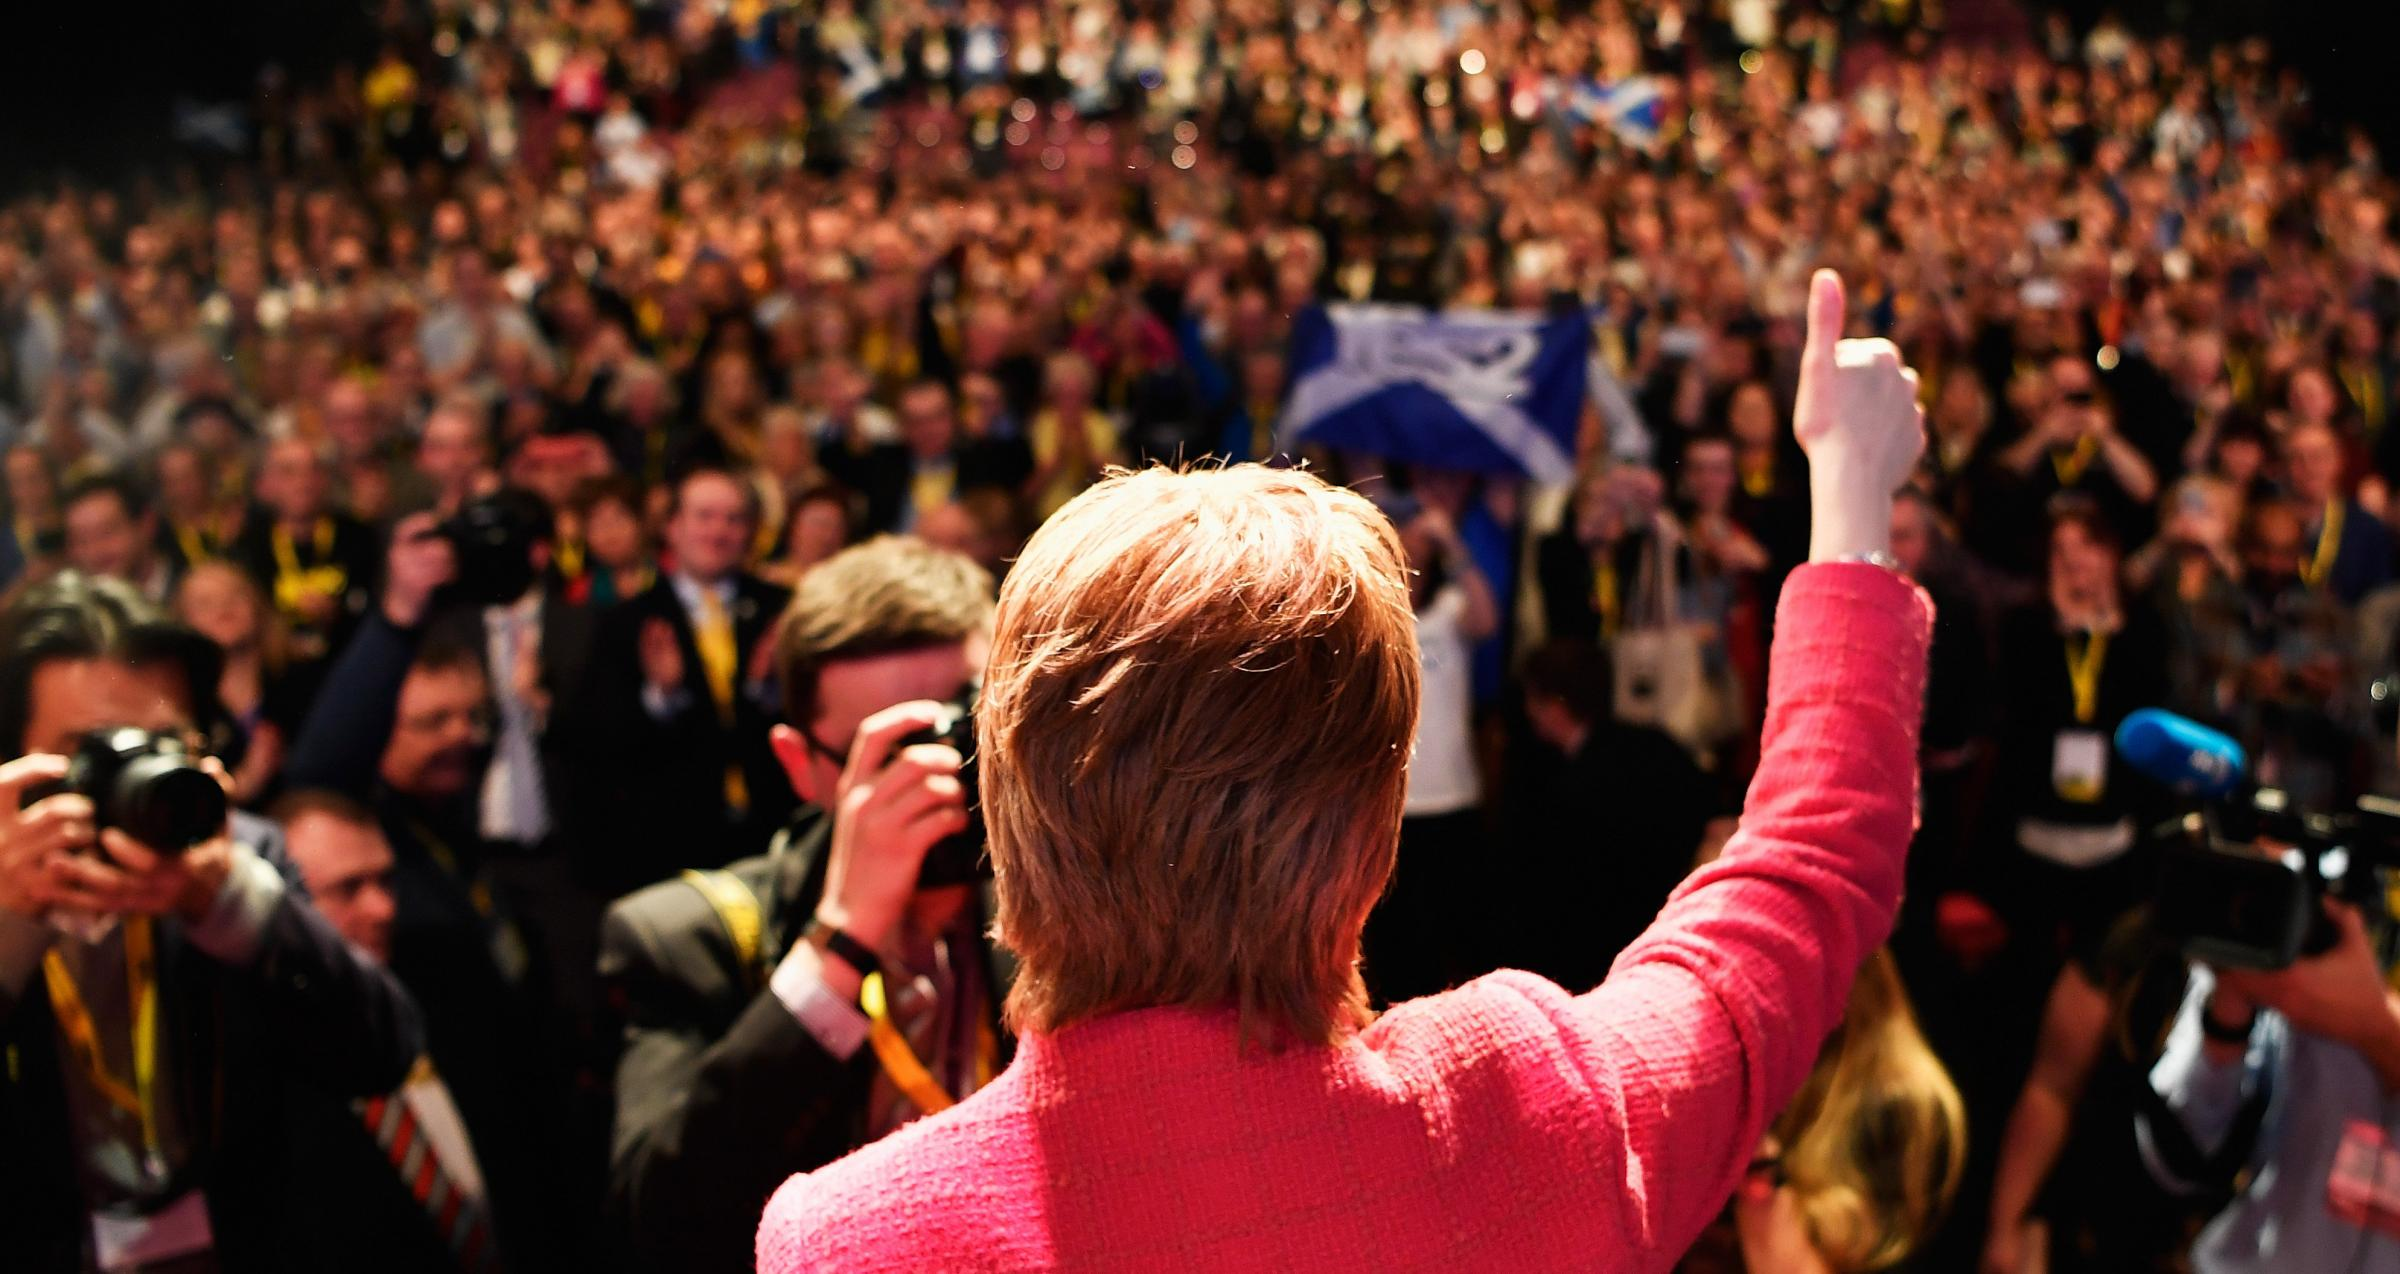 The SNP will gather for their spring conference in Aberdeen next month. Photograph: Getty